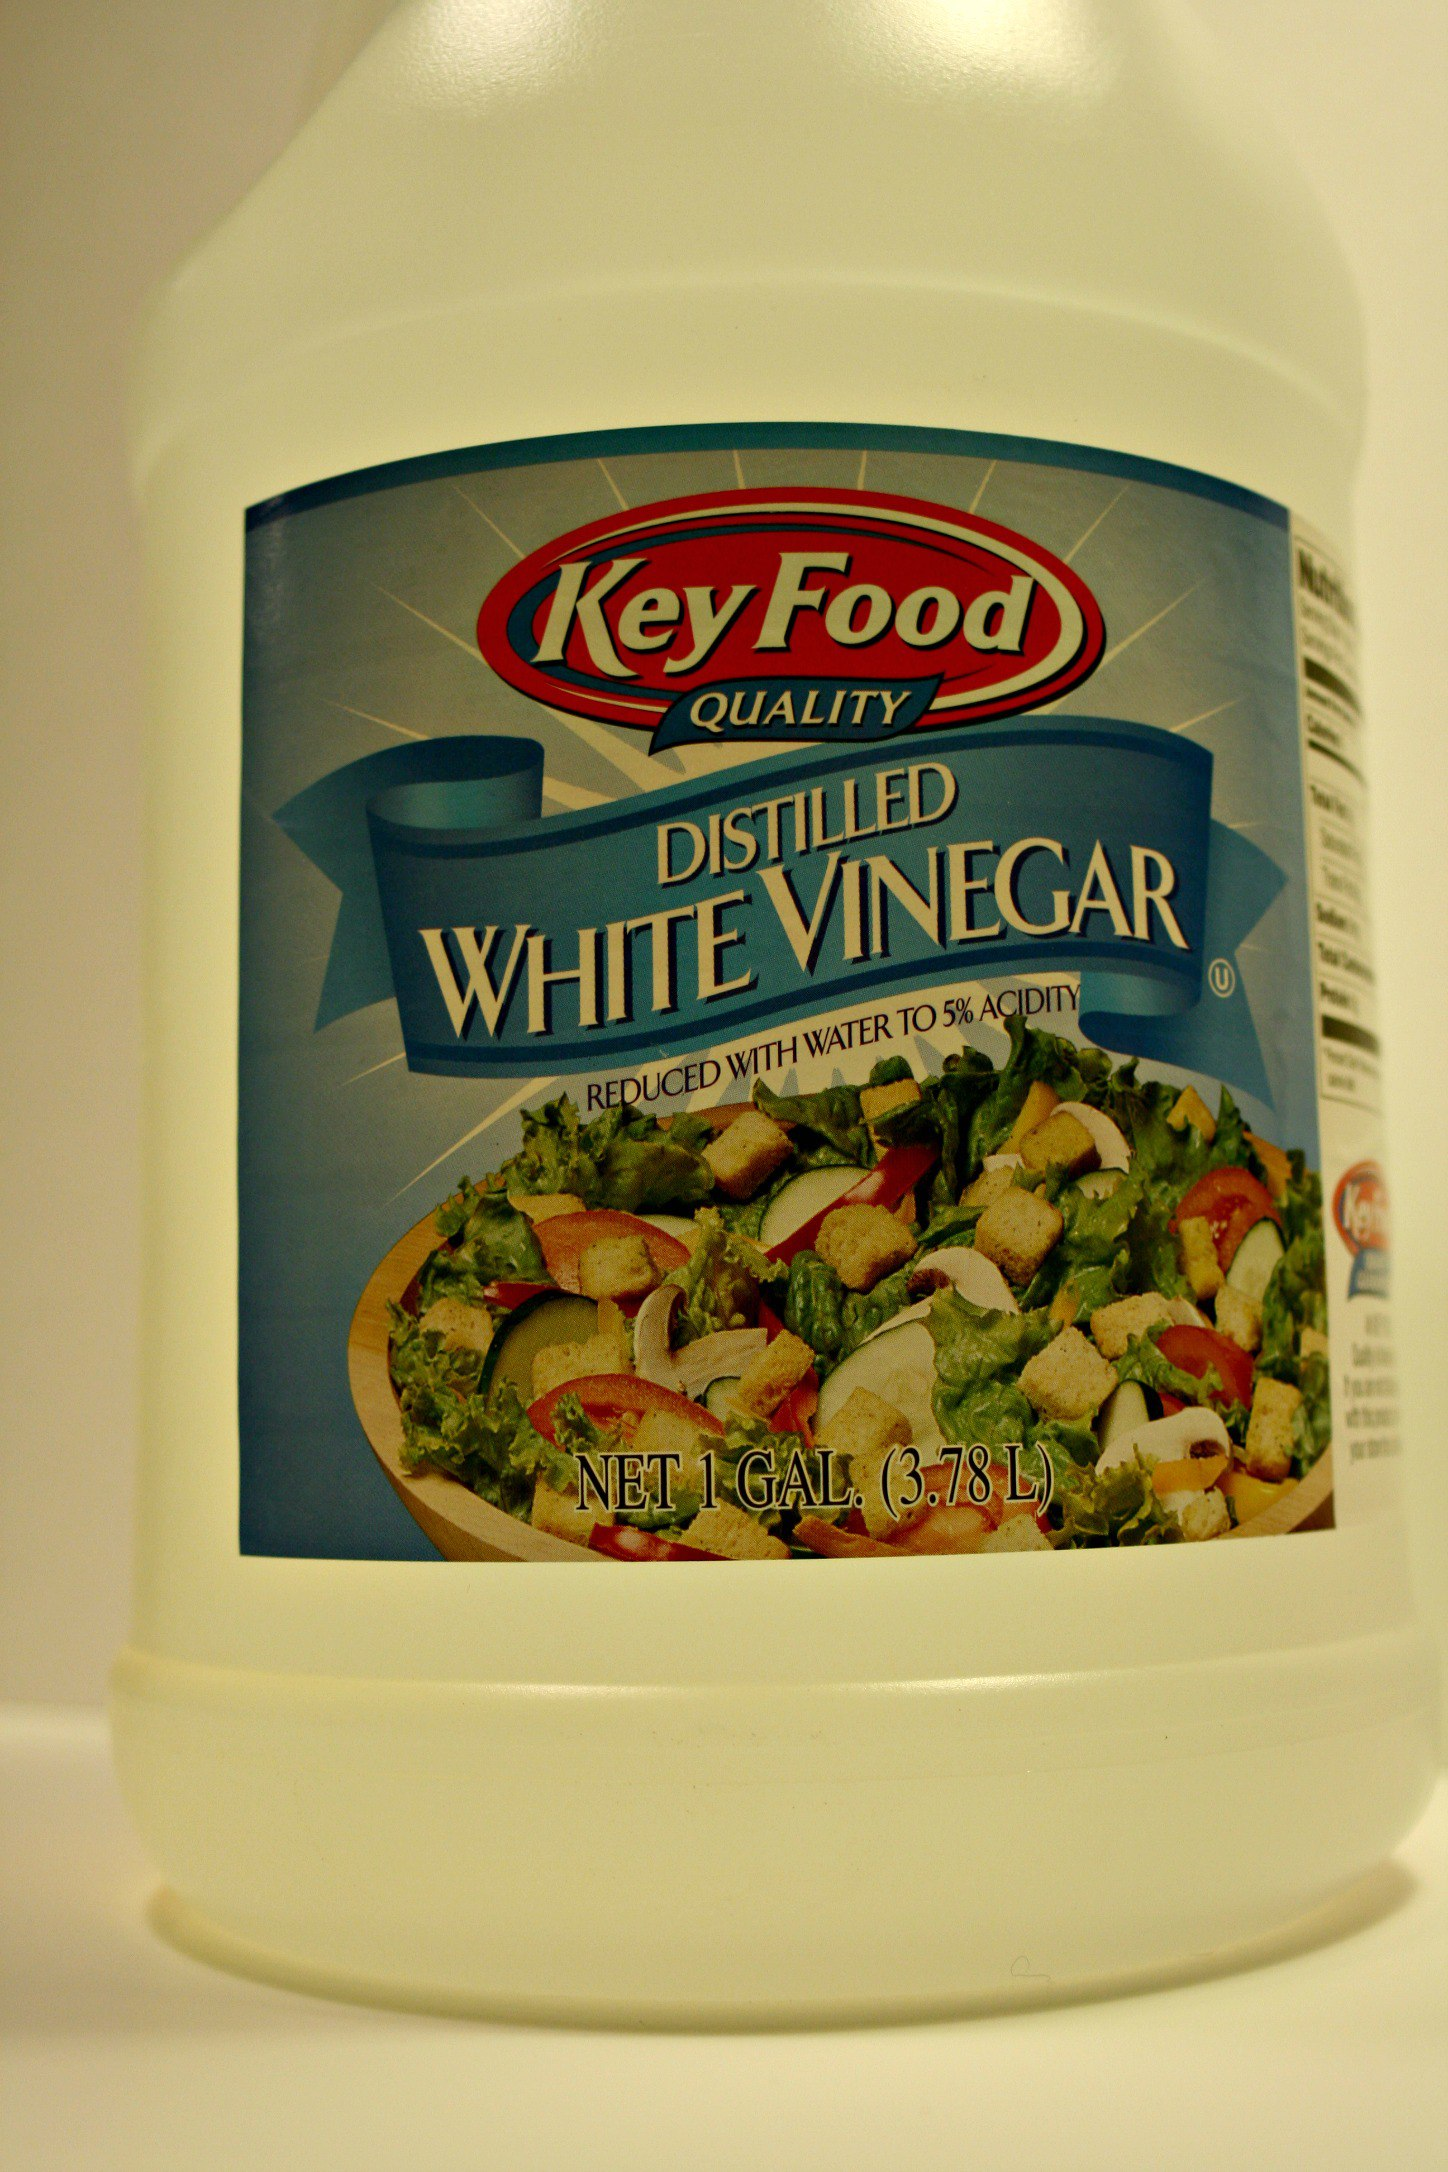 10 ways to clean with vinegar around the house